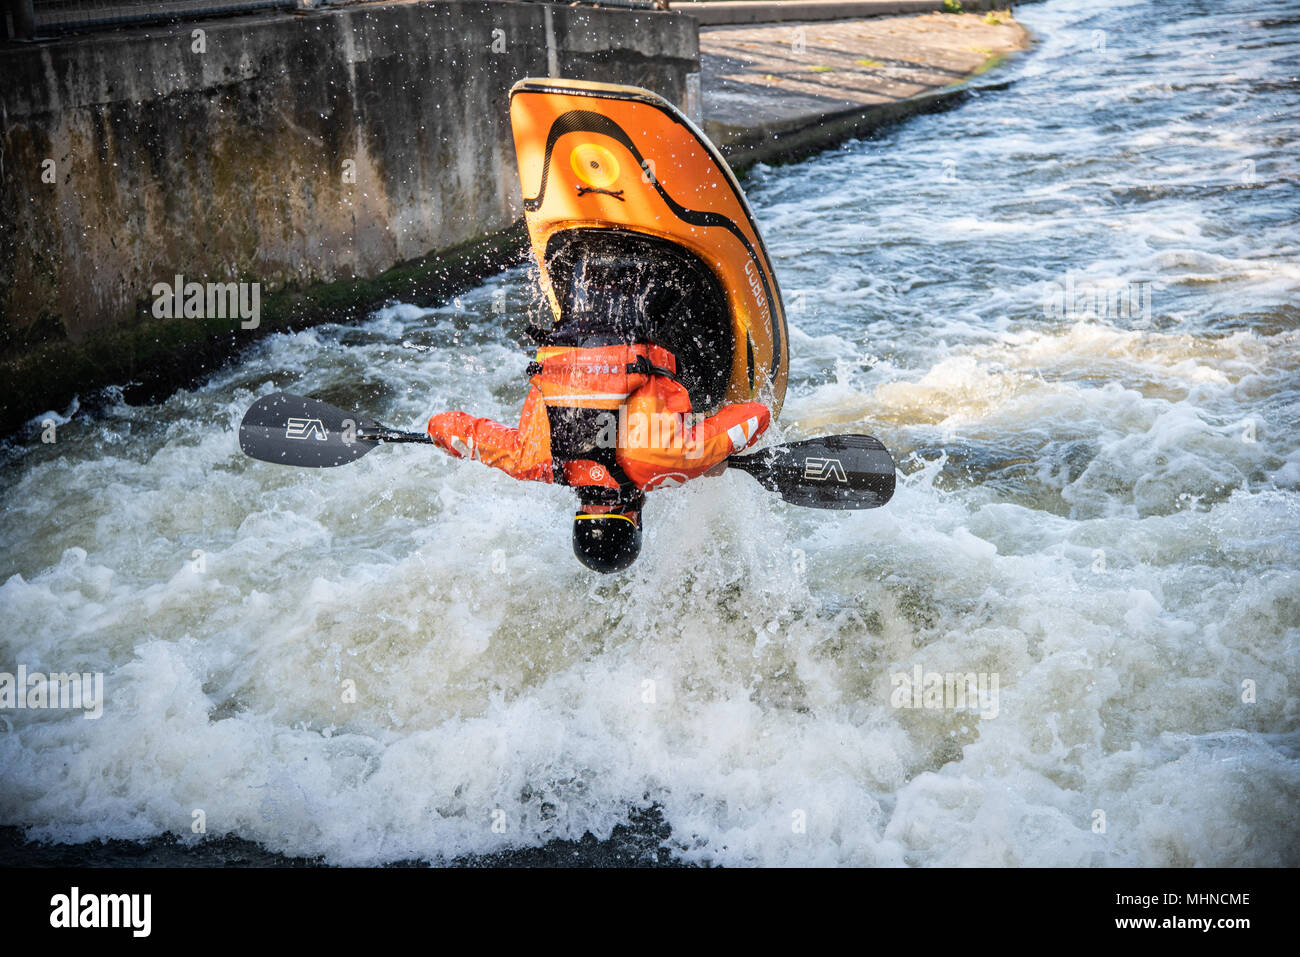 Freestyle Kayaker at the National Watersports Center Nottingham - Stock Image